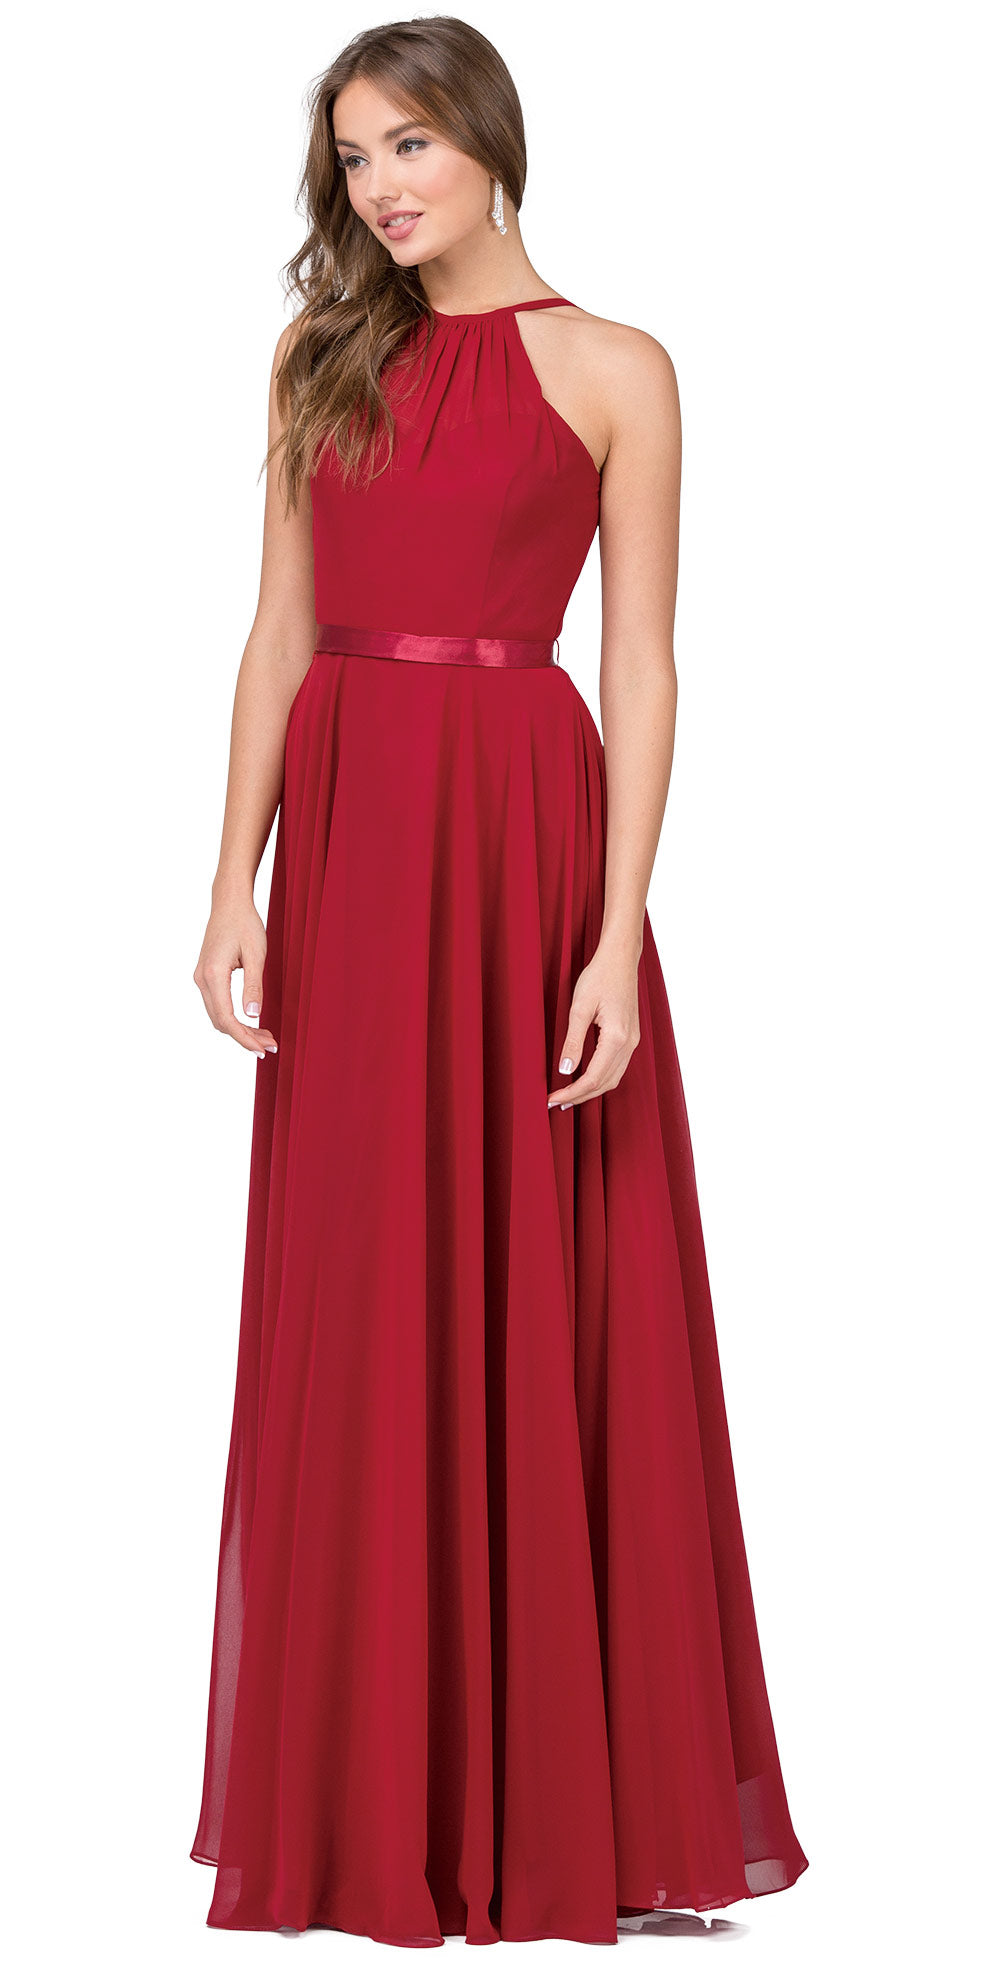 Image of A-line High Neck Chiffon Long Bridesmaid Dress in Burgundy